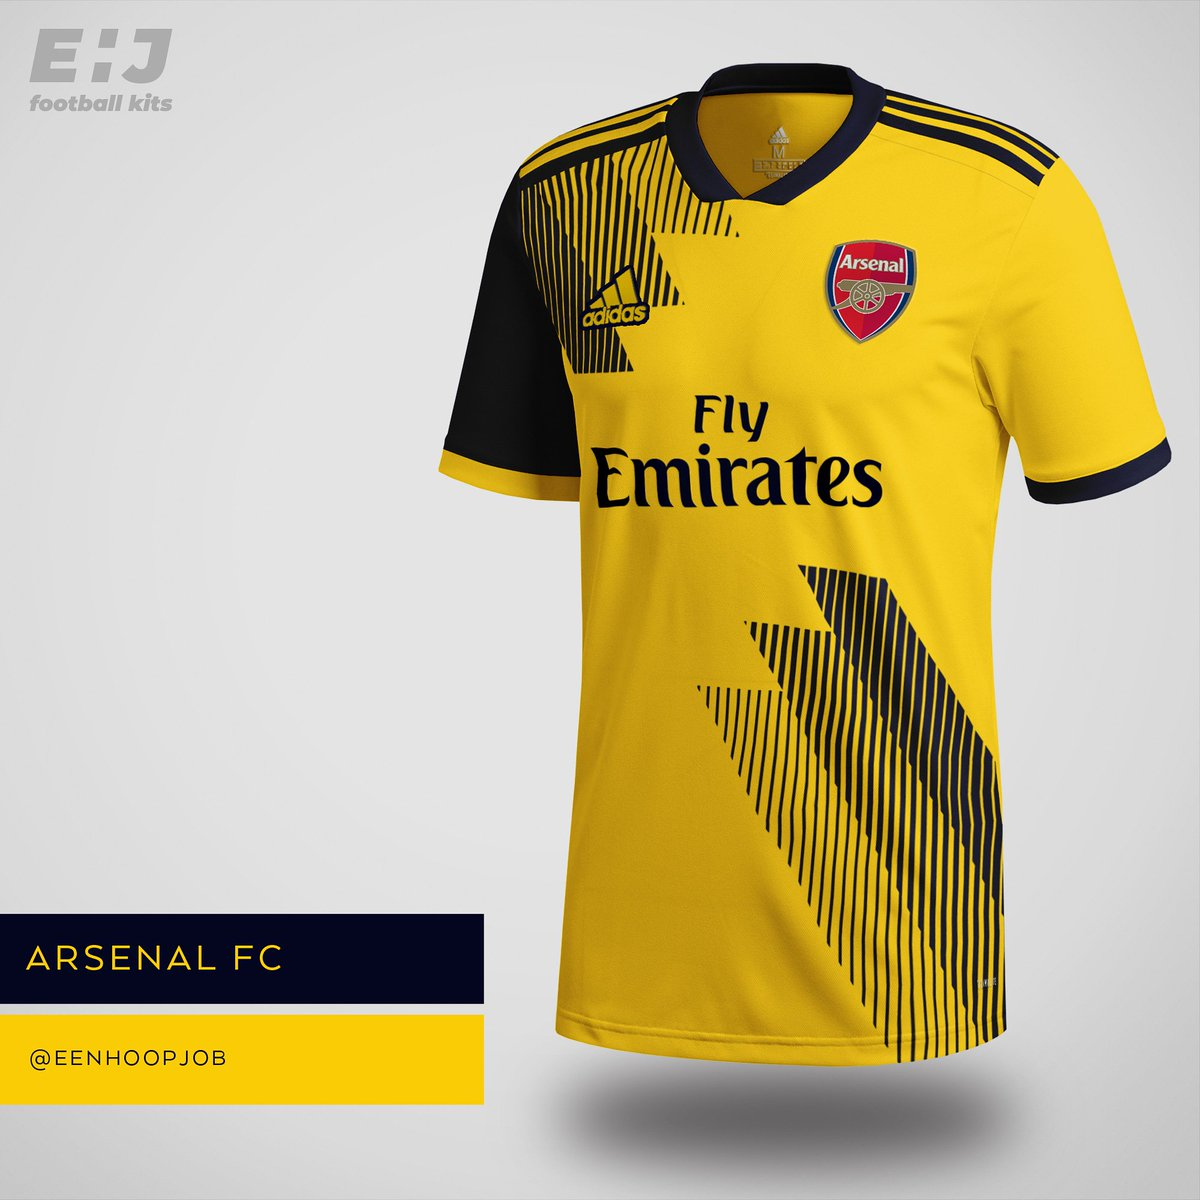 5bd4829899f Job - Eenhoopjob Football Kit Designs on Twitter